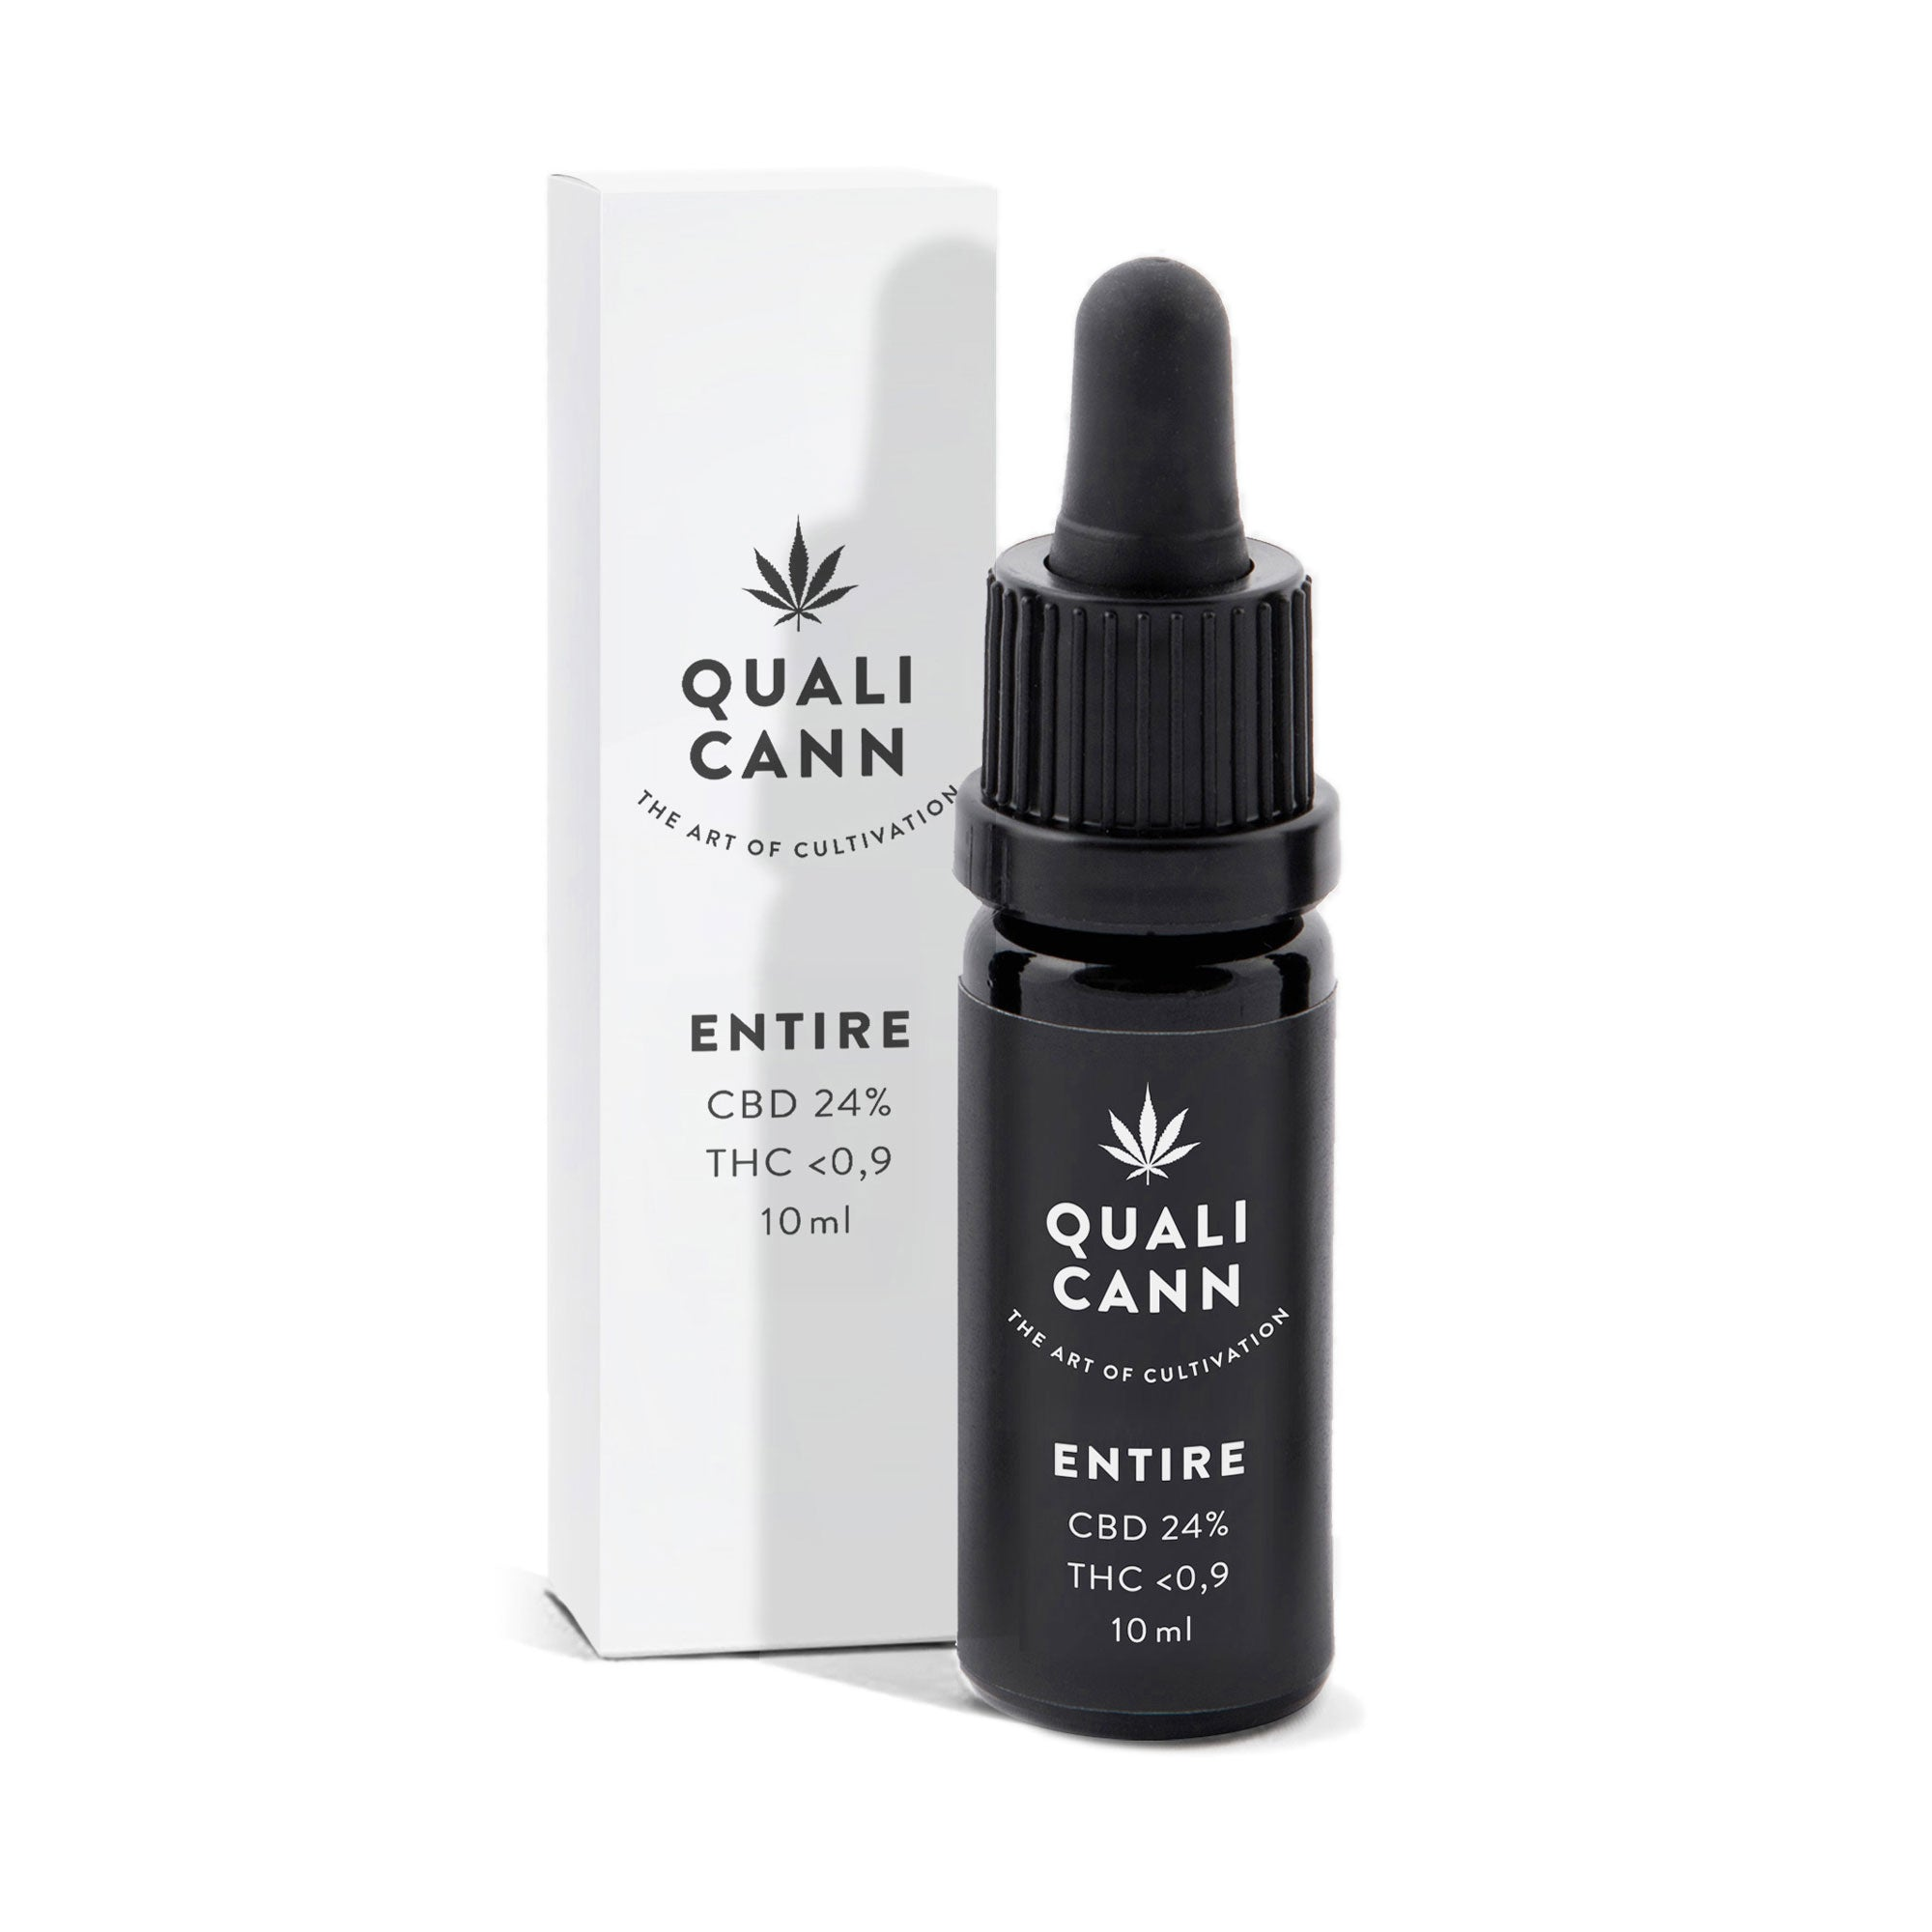 Entire 24% Full-Spectrum CBD Oil (2400mg) | Qualicann | CBD oil | uWeed | Swiss CBD Shop